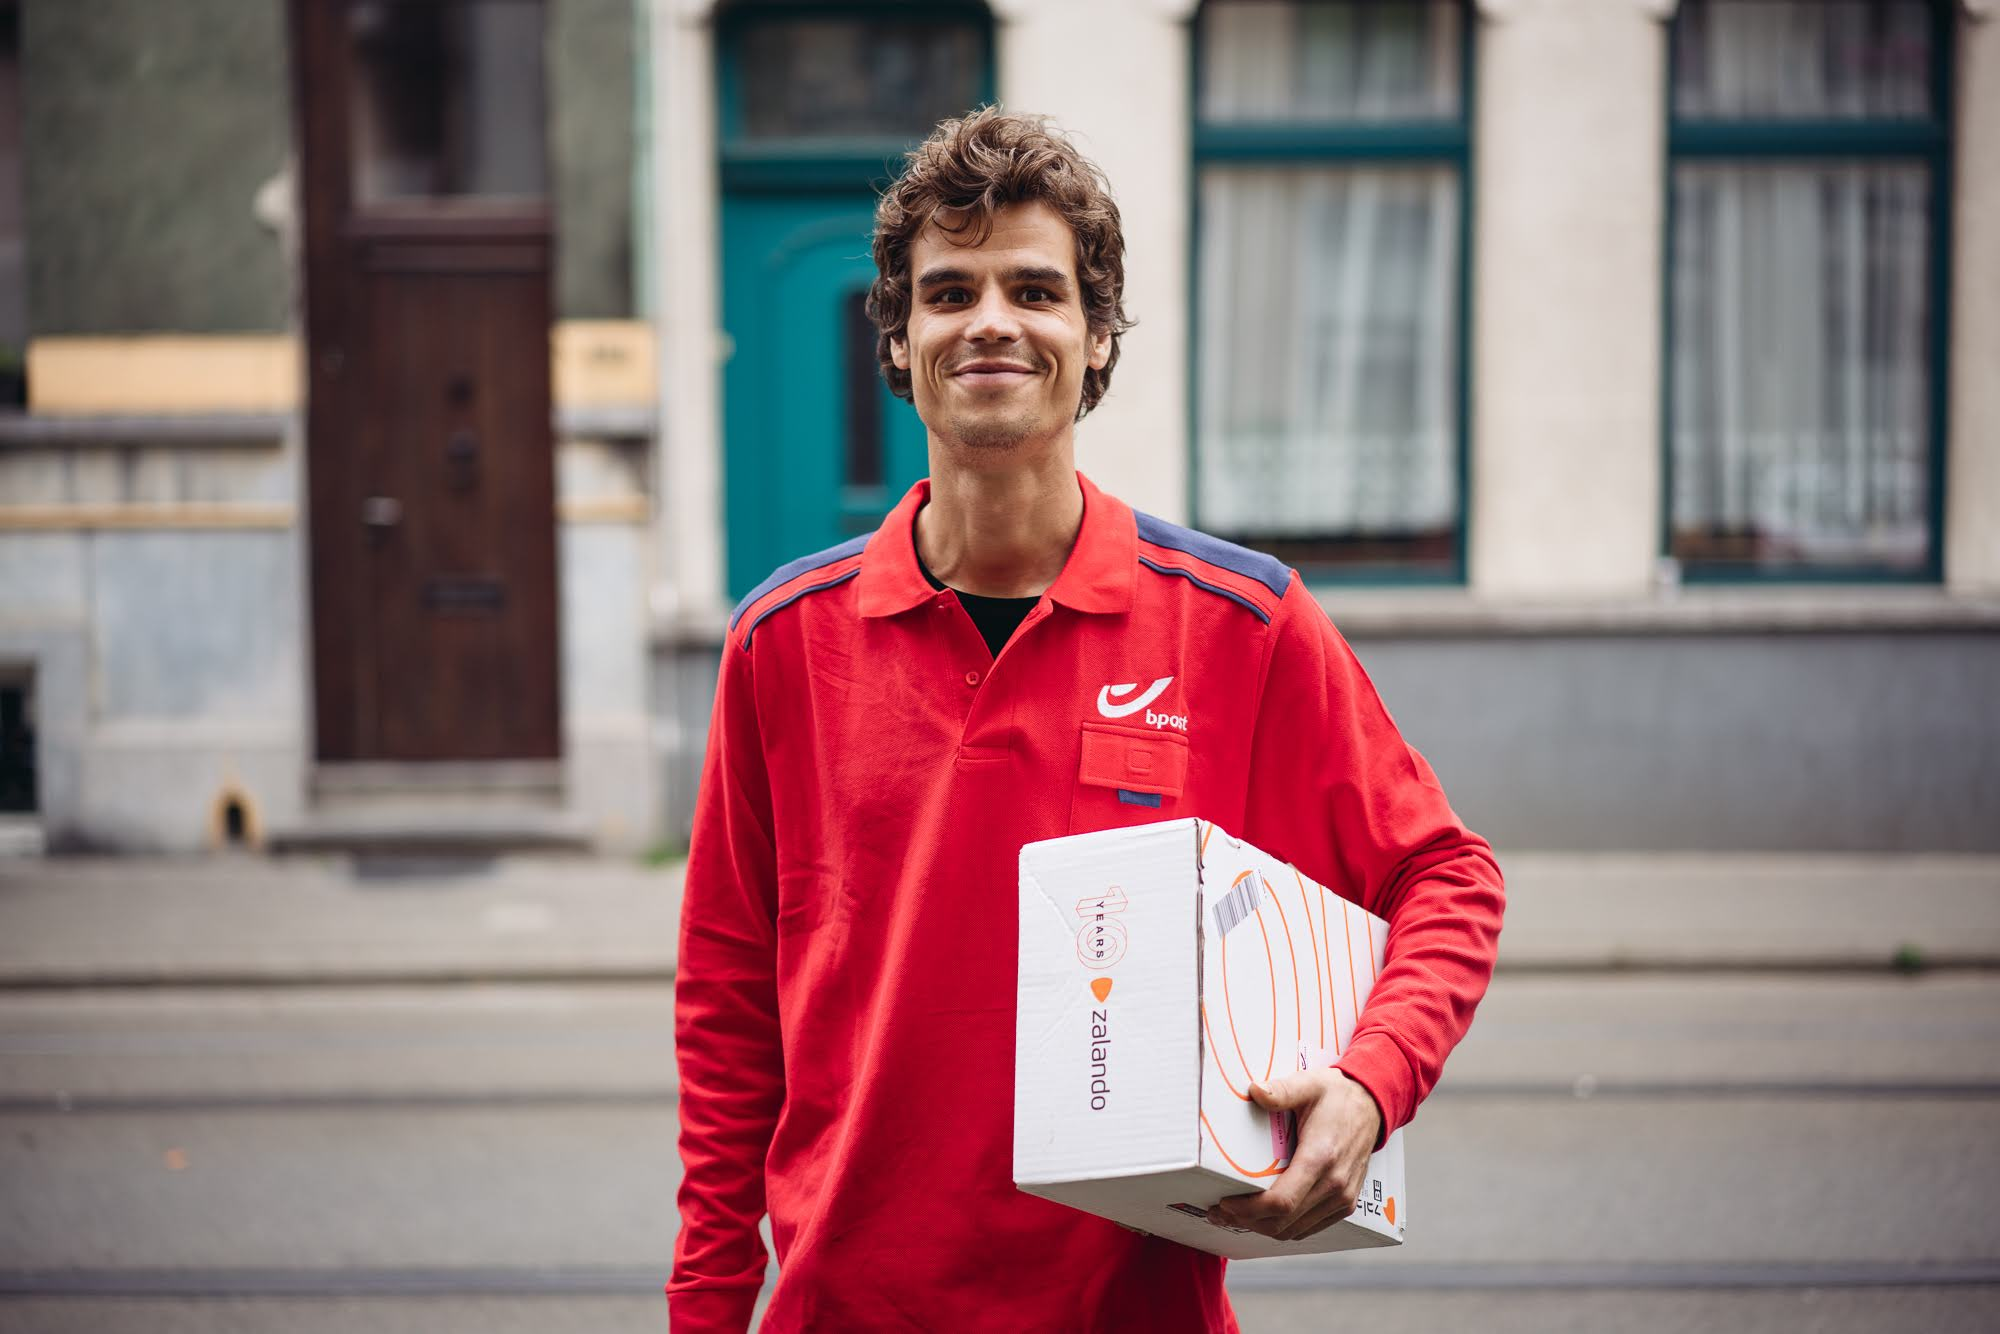 Meet Pieter, your in home delivery courier from bpost.